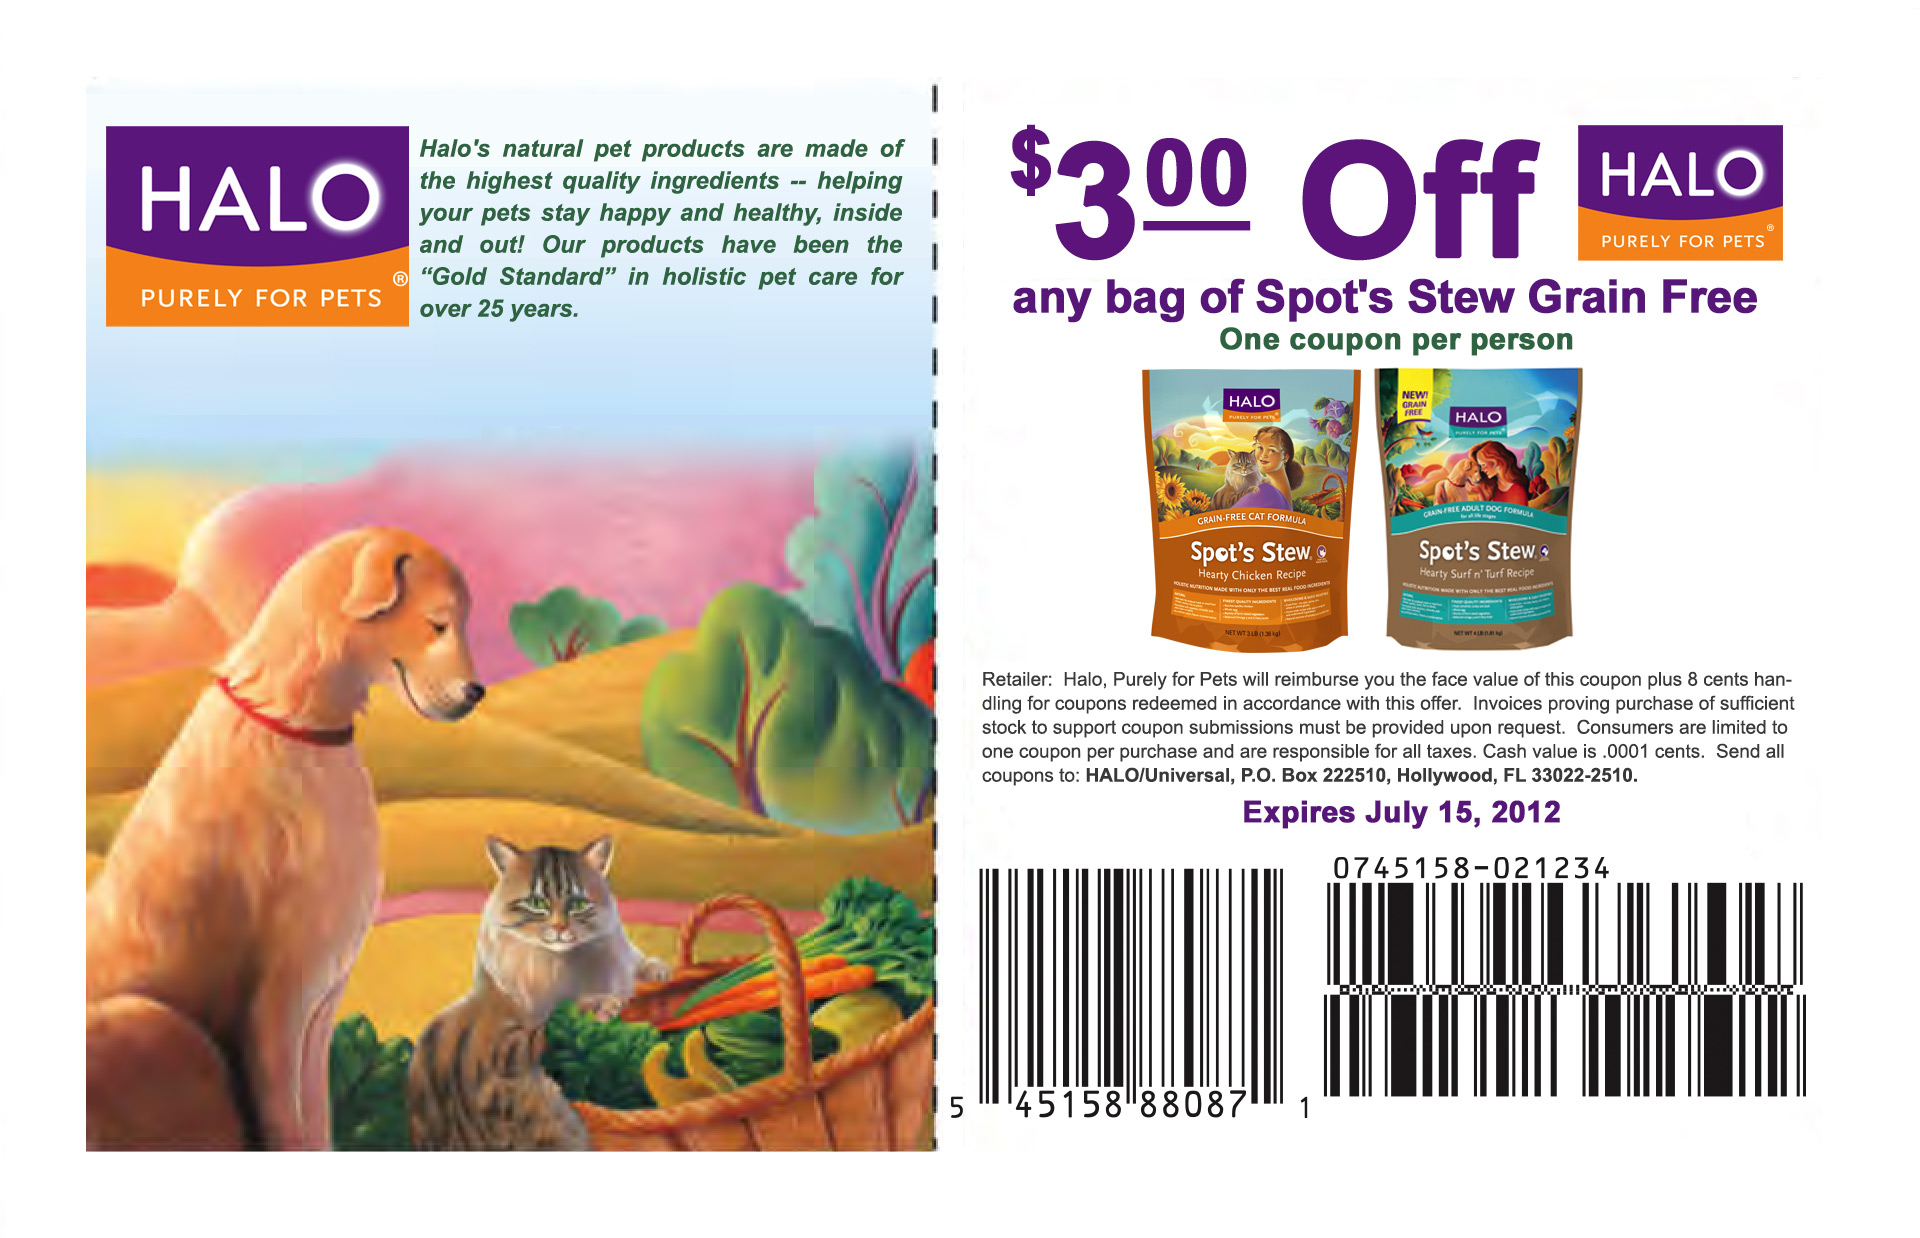 Halo Cat Food Coupons And Reviews | Cat Food Coupons - Free Printable Dog Food Coupons